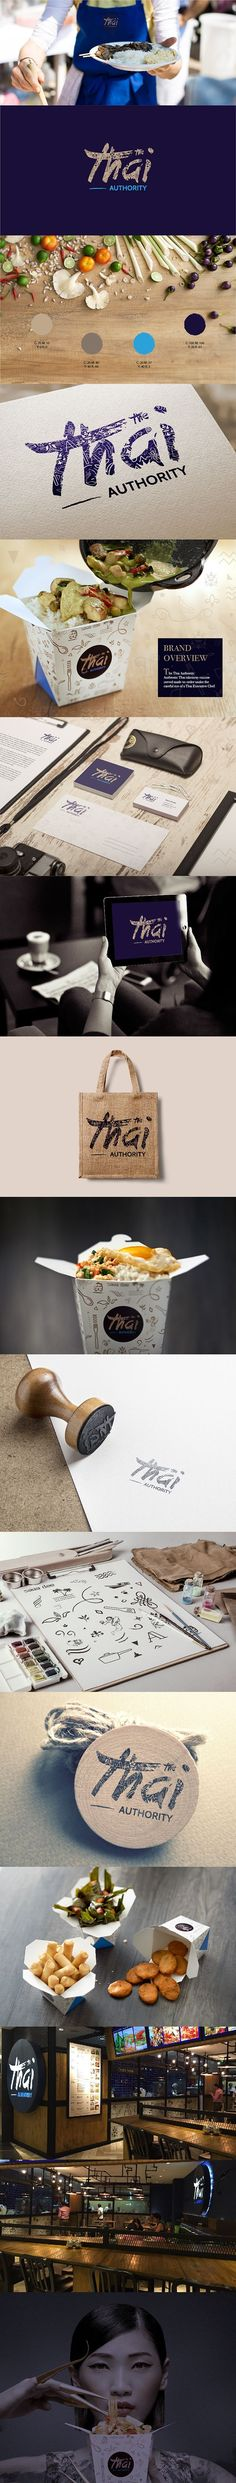 https://www.behance.net/gallery/21663637/Thai-Authority-Restaurant